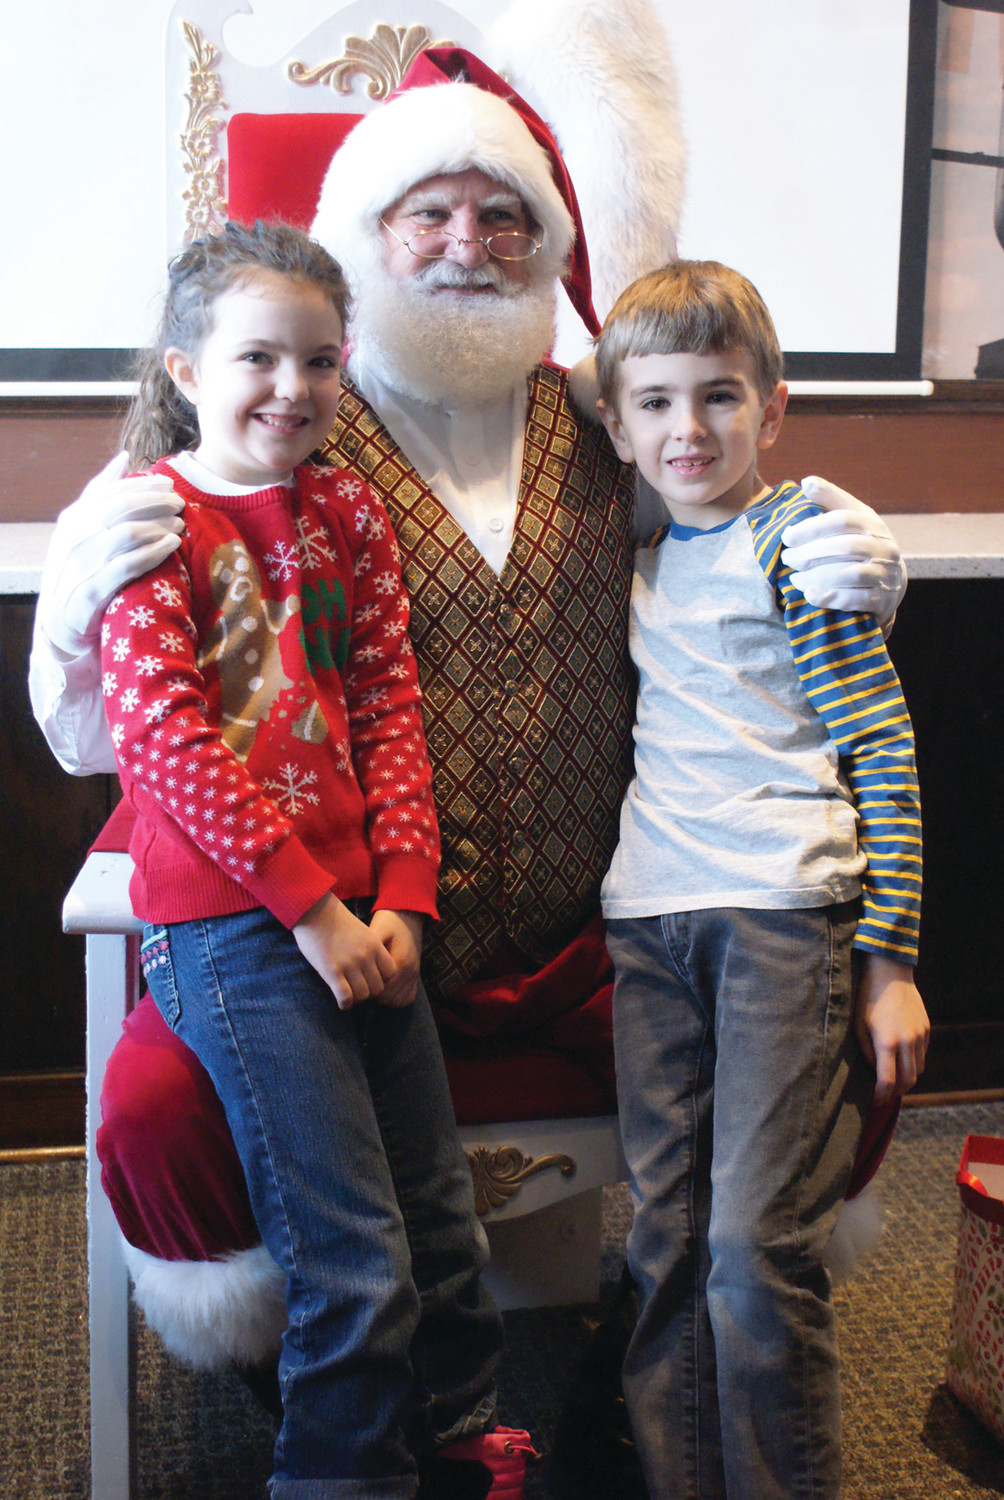 SMILING WITH SANTA: Pictured are cousins Rachael and Carter Pine who are both 7 years old. They enjoyed their breakfast and visit with Santa at The Corner Bakery in Garden City.